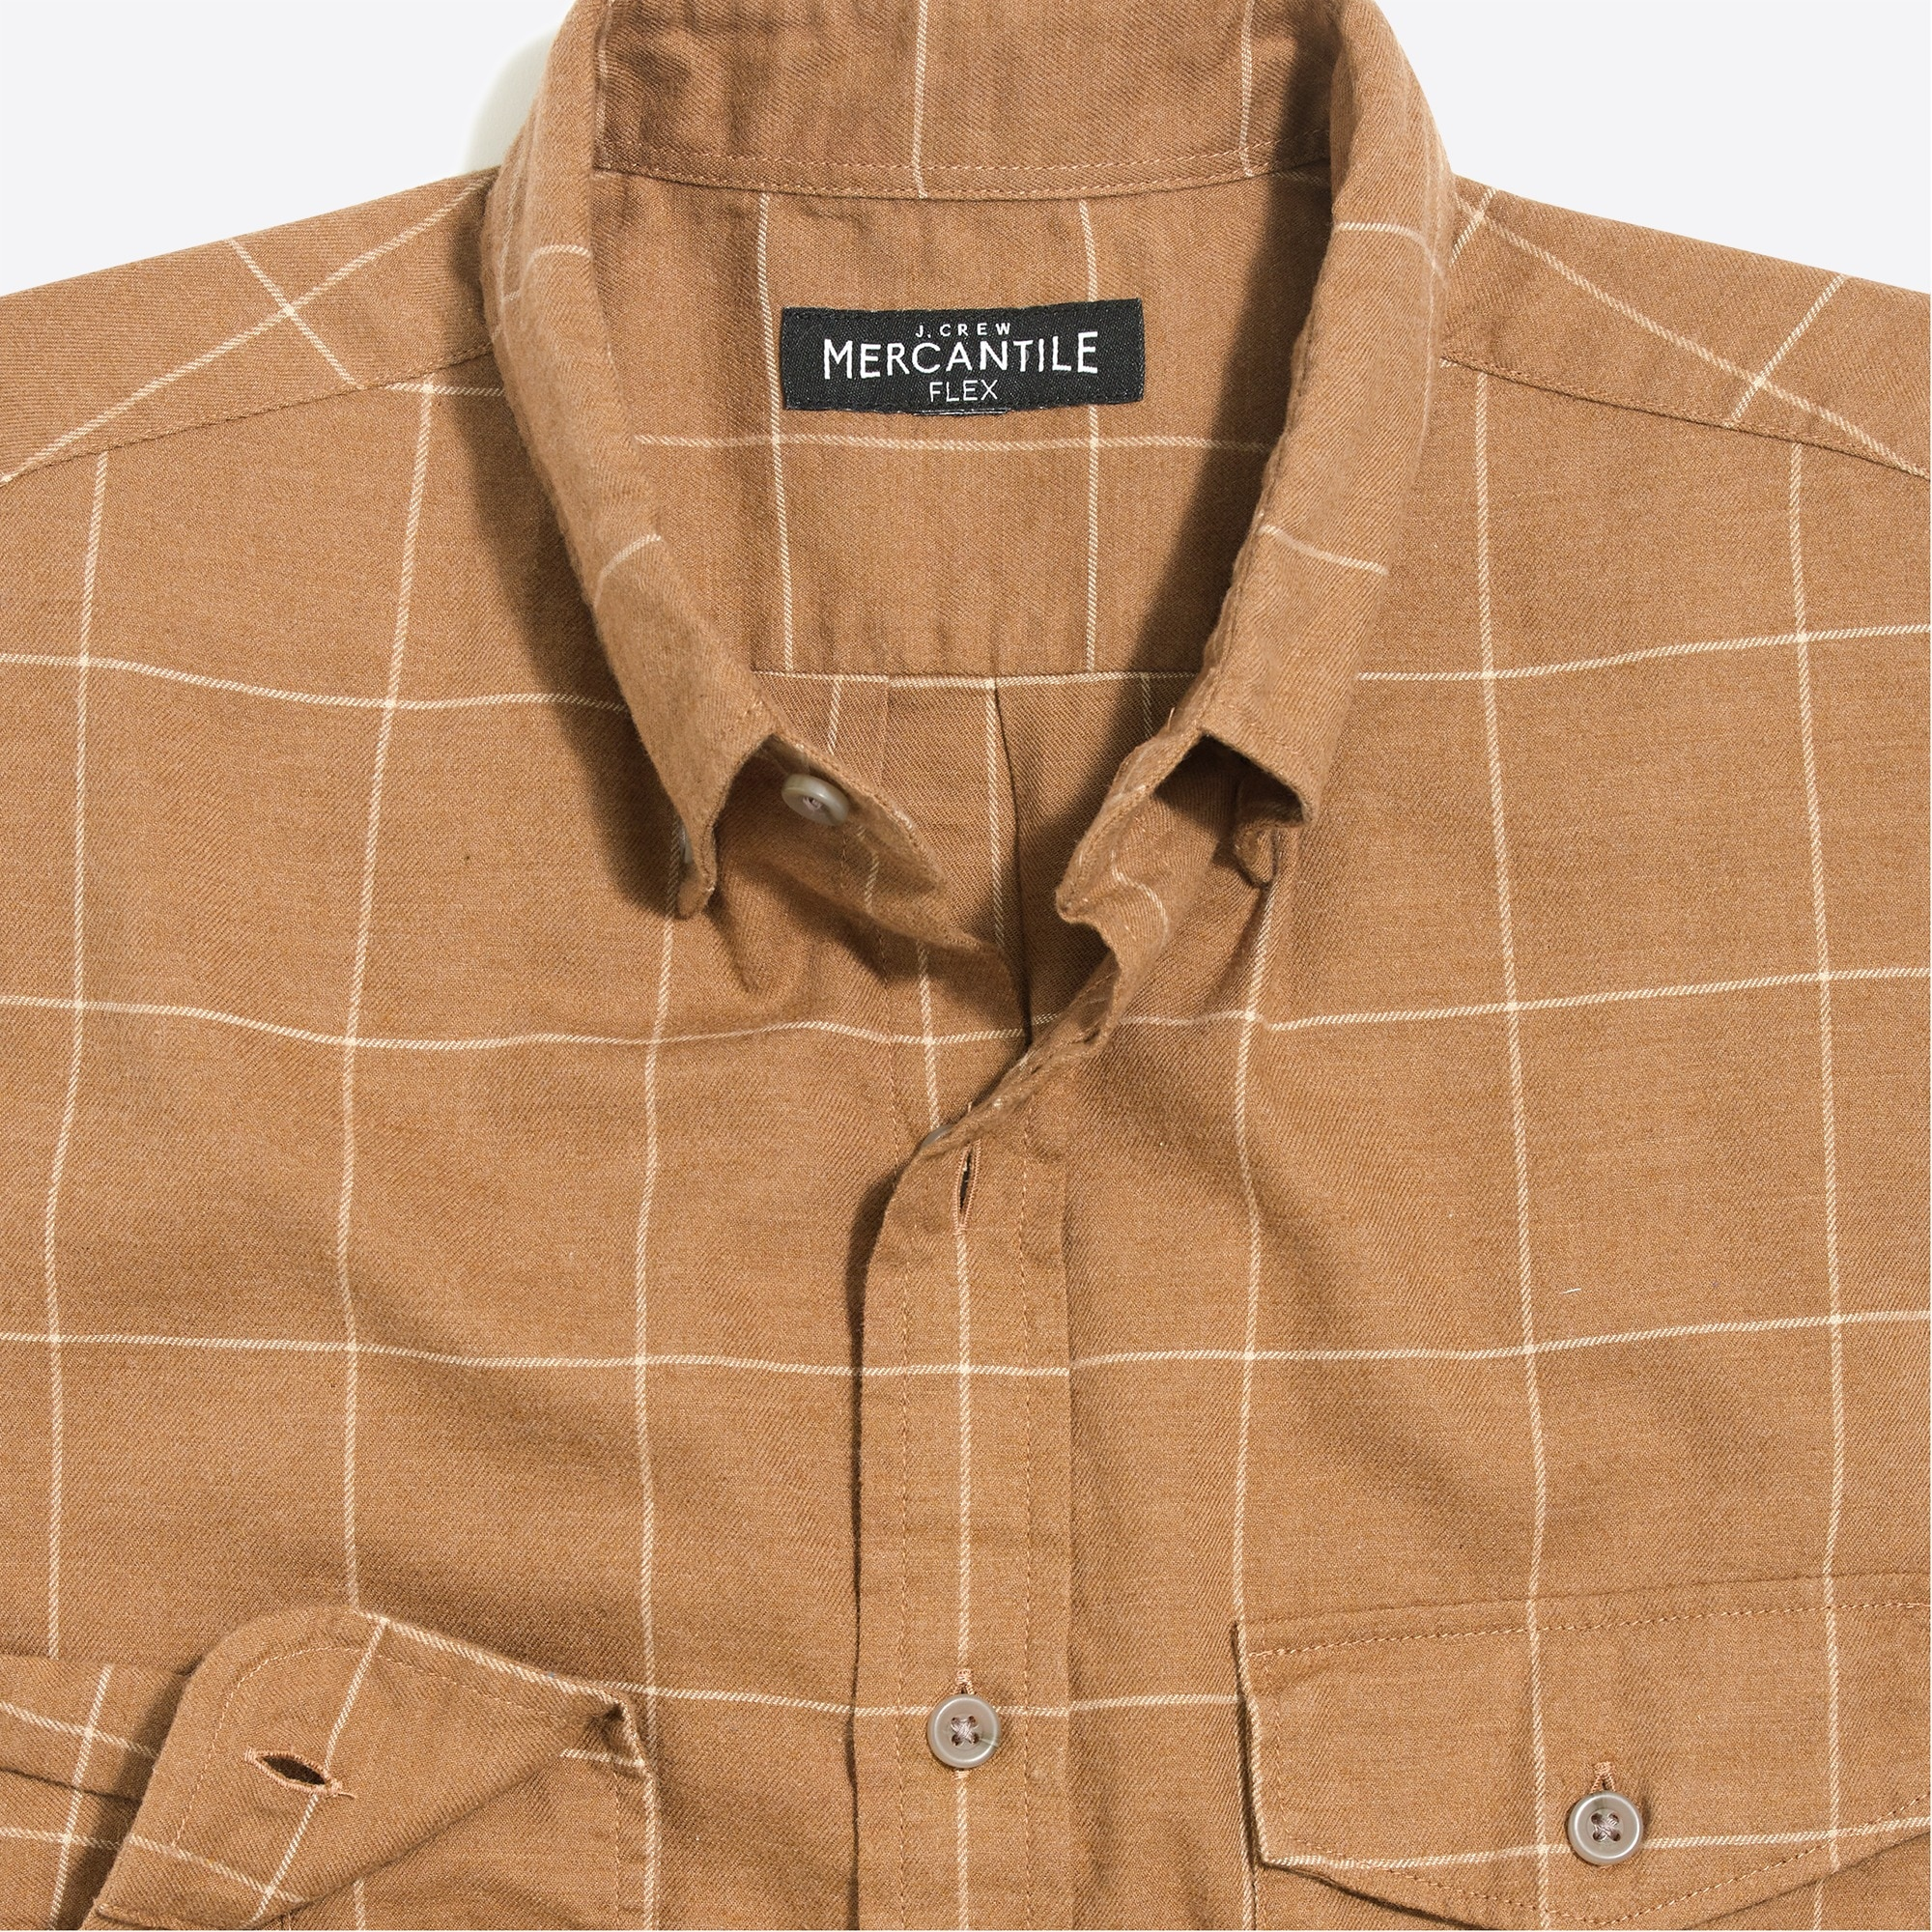 Image 1 for Slim-fit heather flex shirt in brushed twill windowpane